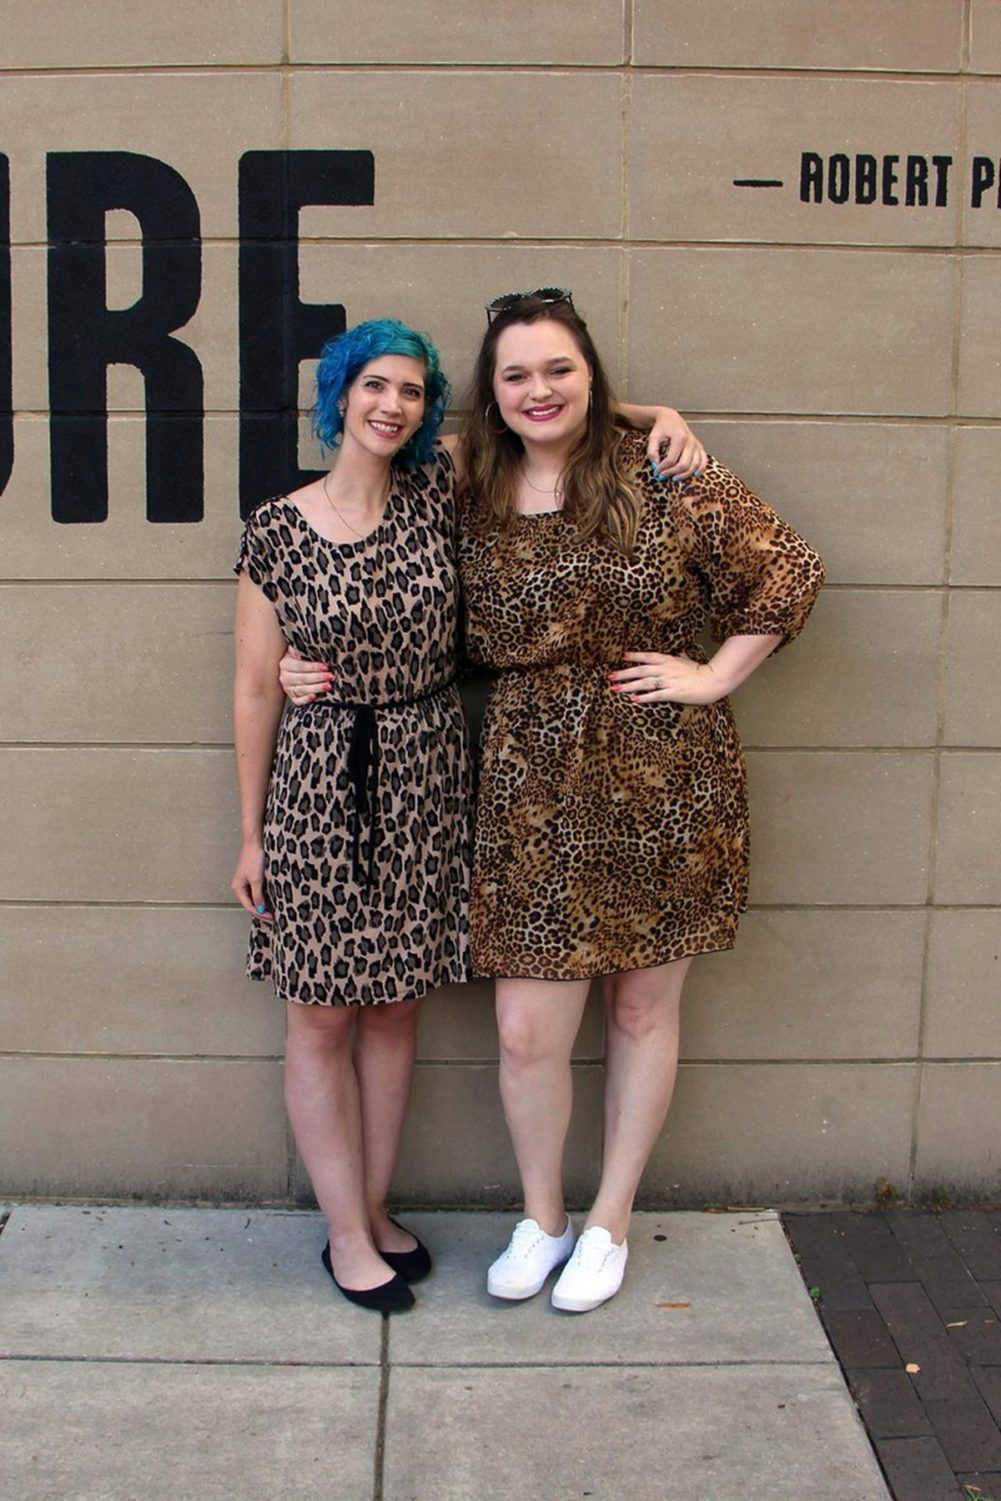 Outfits: leopard print dress, sky blue curly hair, black flats, white sneakers